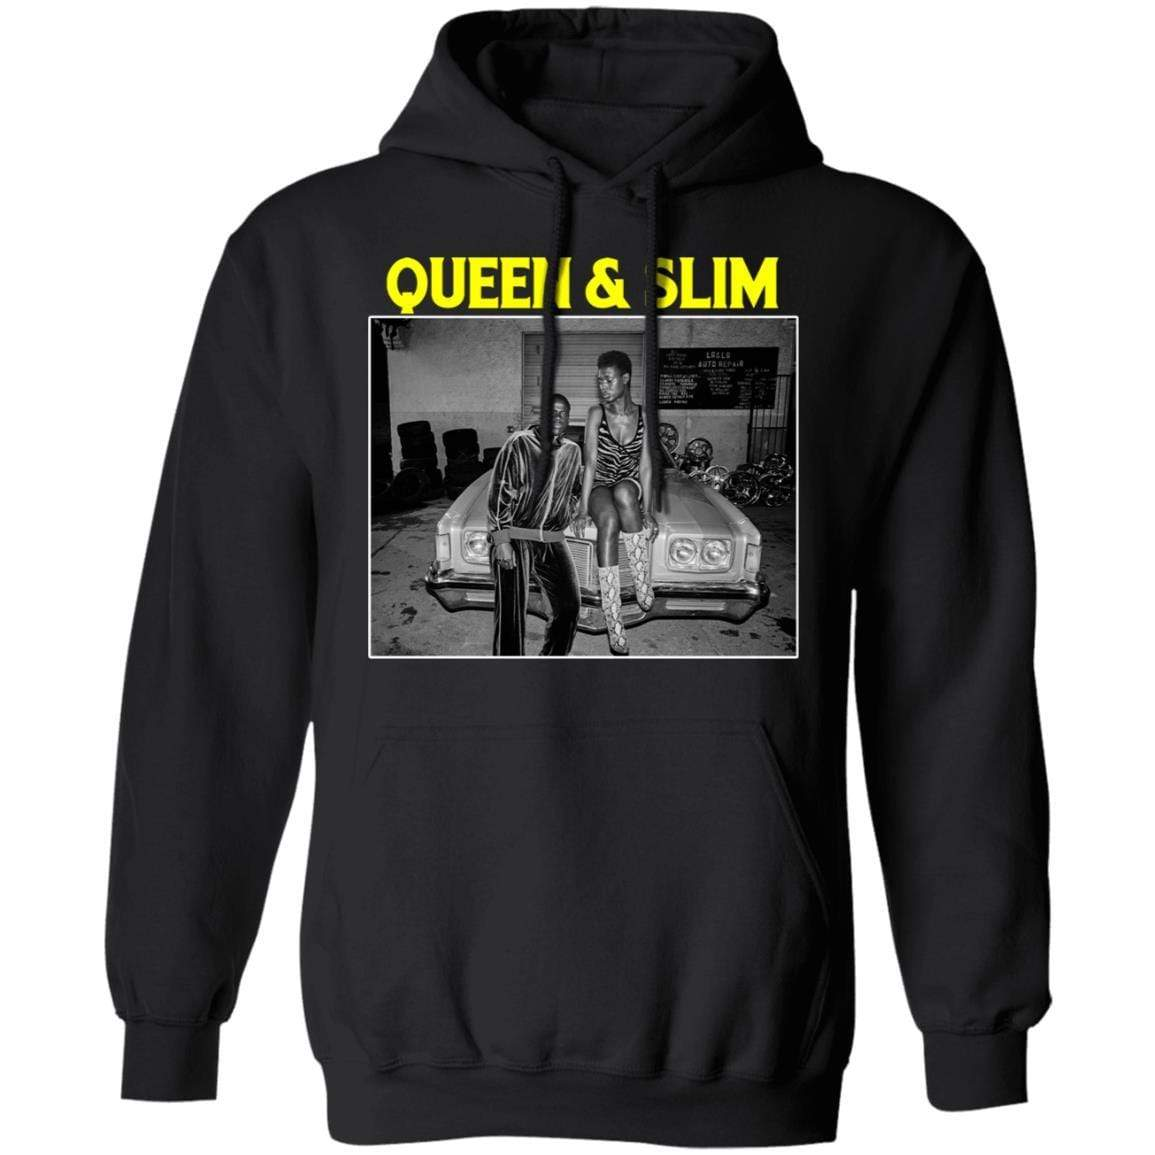 Queen & Slim T-Shirts, Hoodies 541-4740-91844475-23087 - Tee Ript